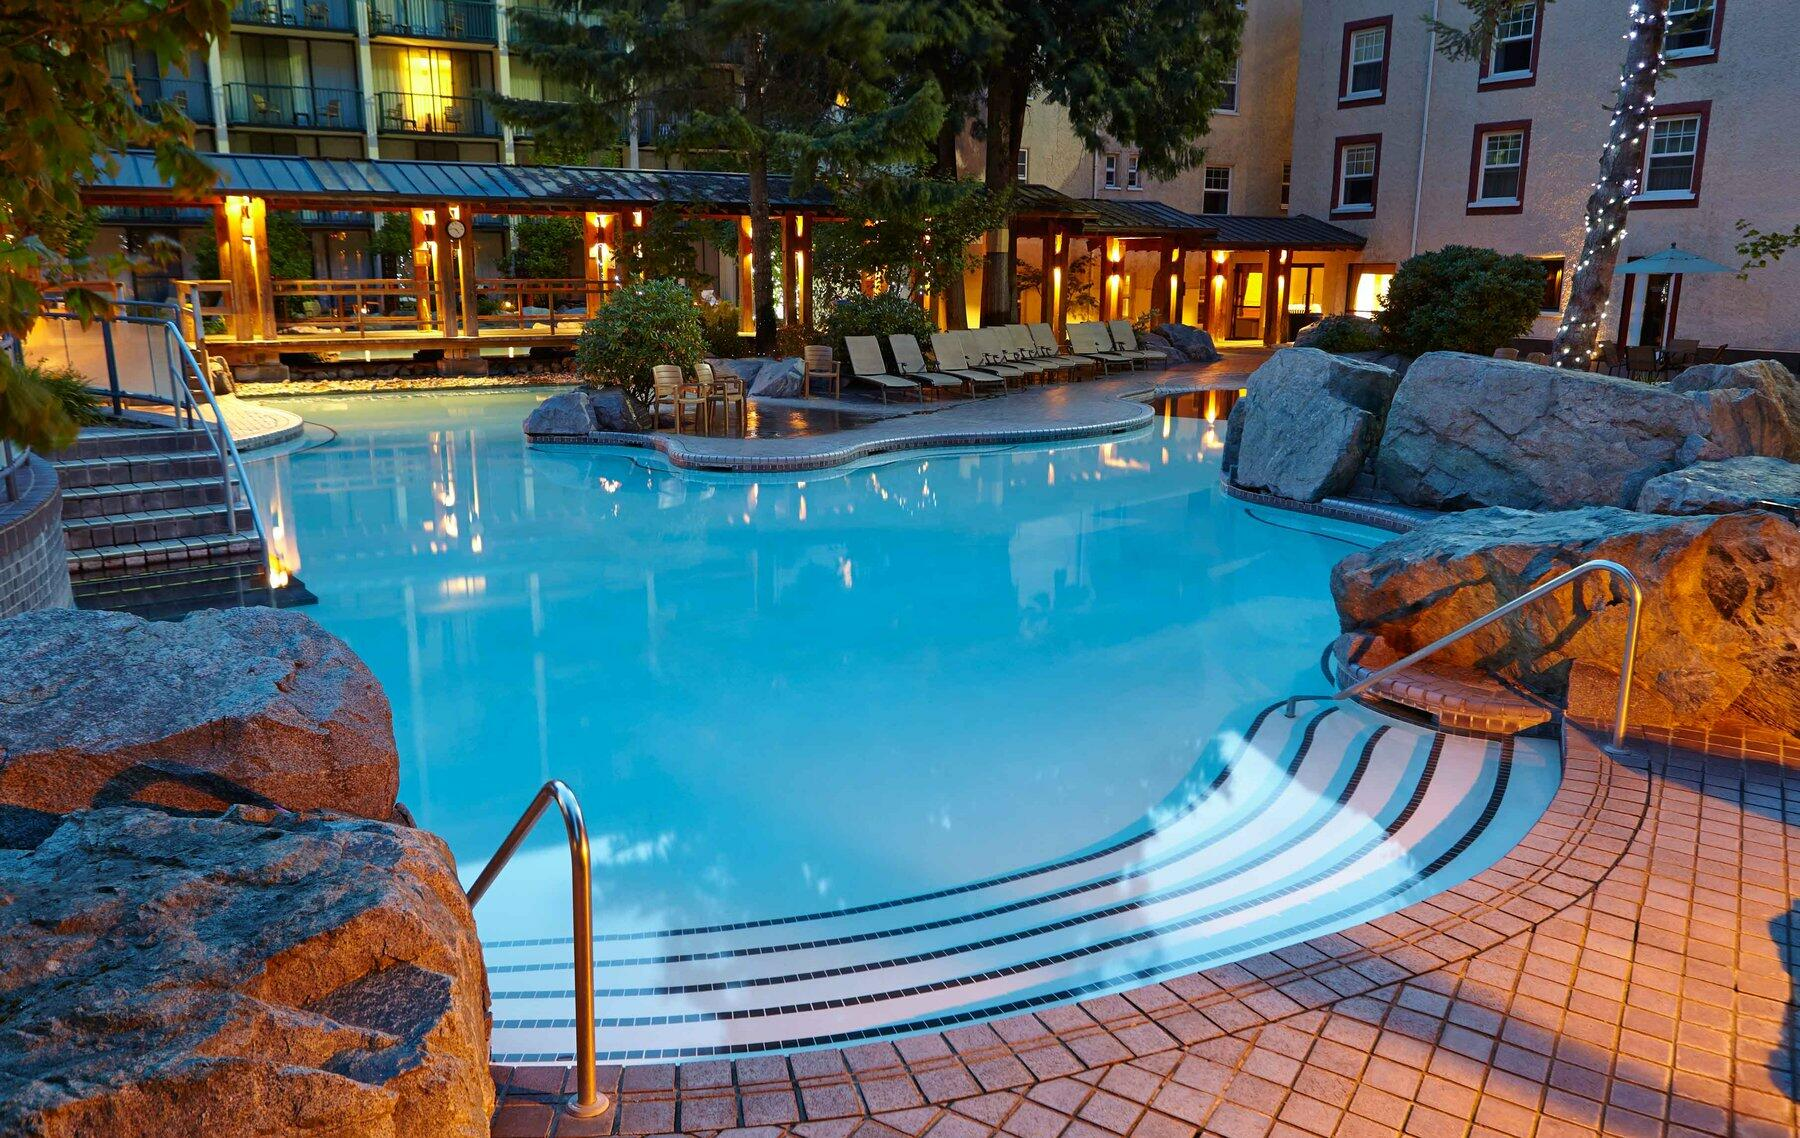 Outdoor pool at night.